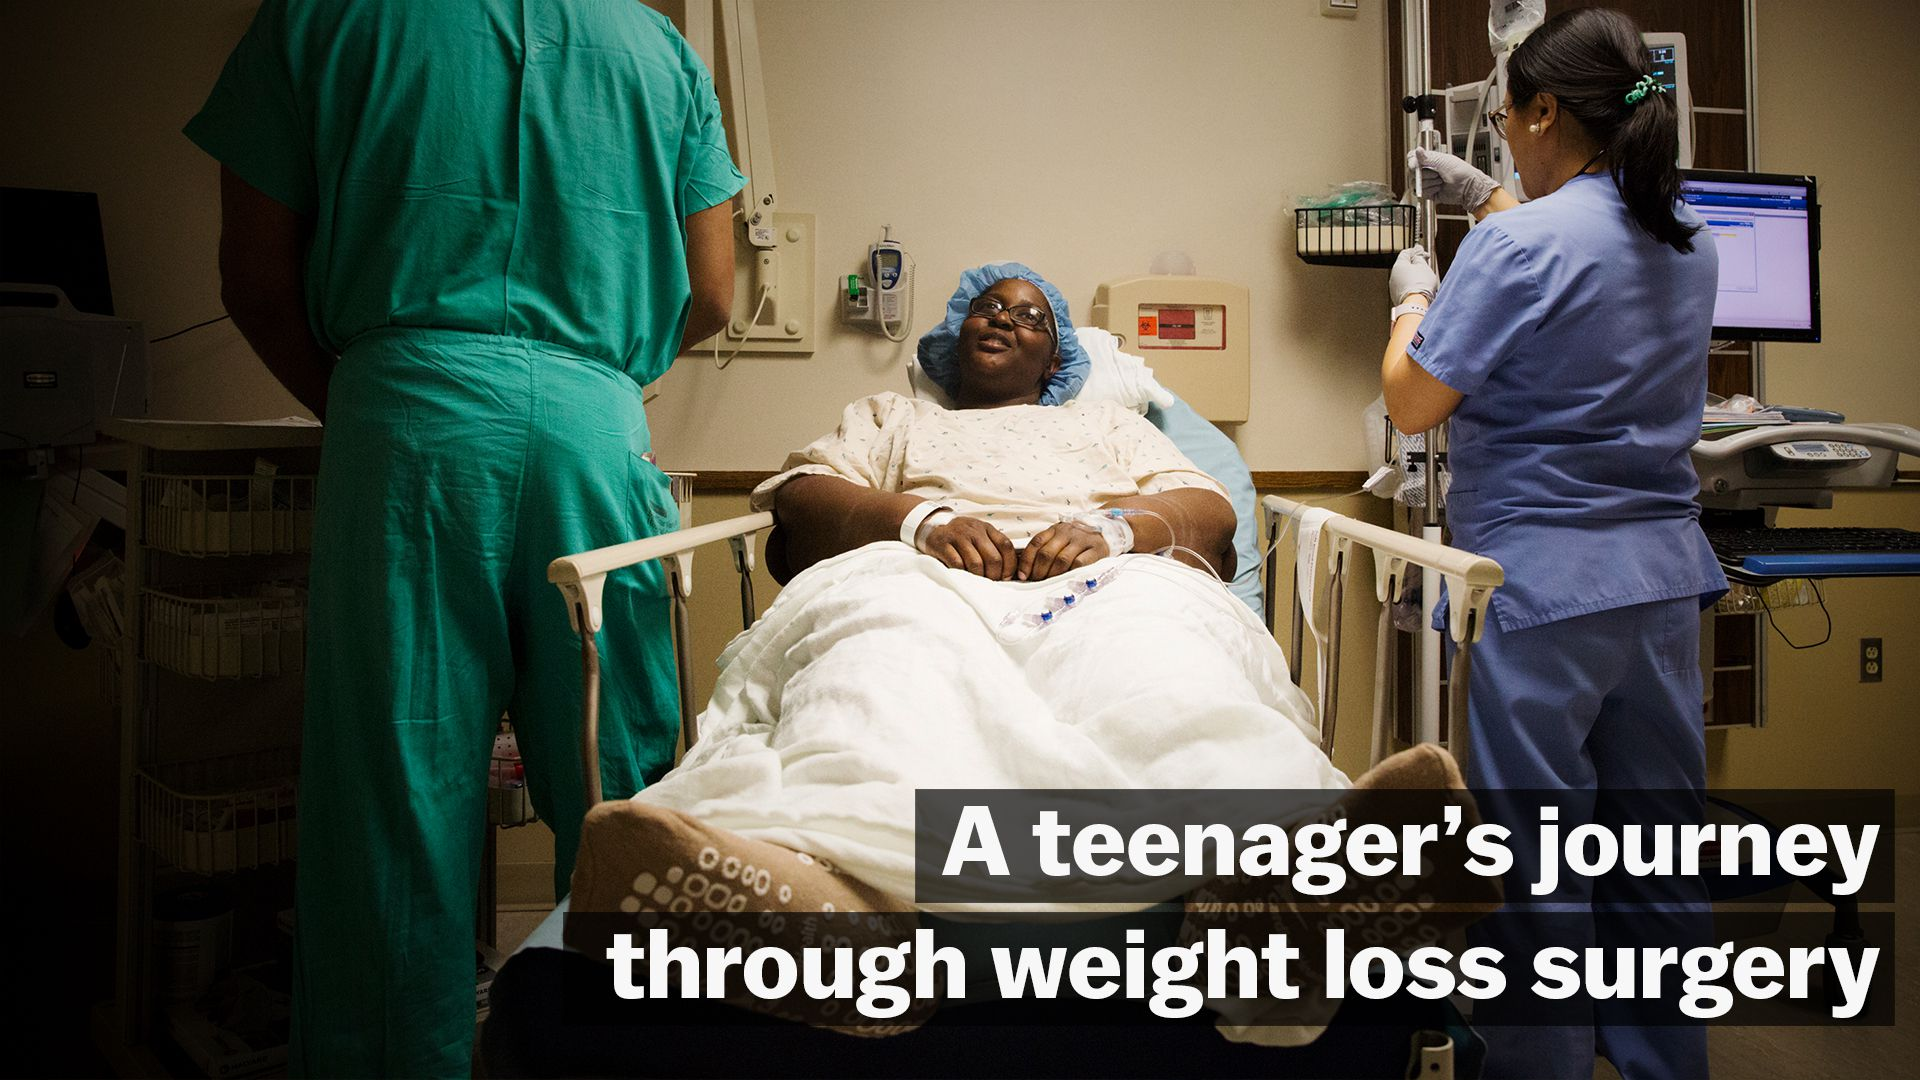 Does bariatric surgery help teens lose weight? Jewel tells